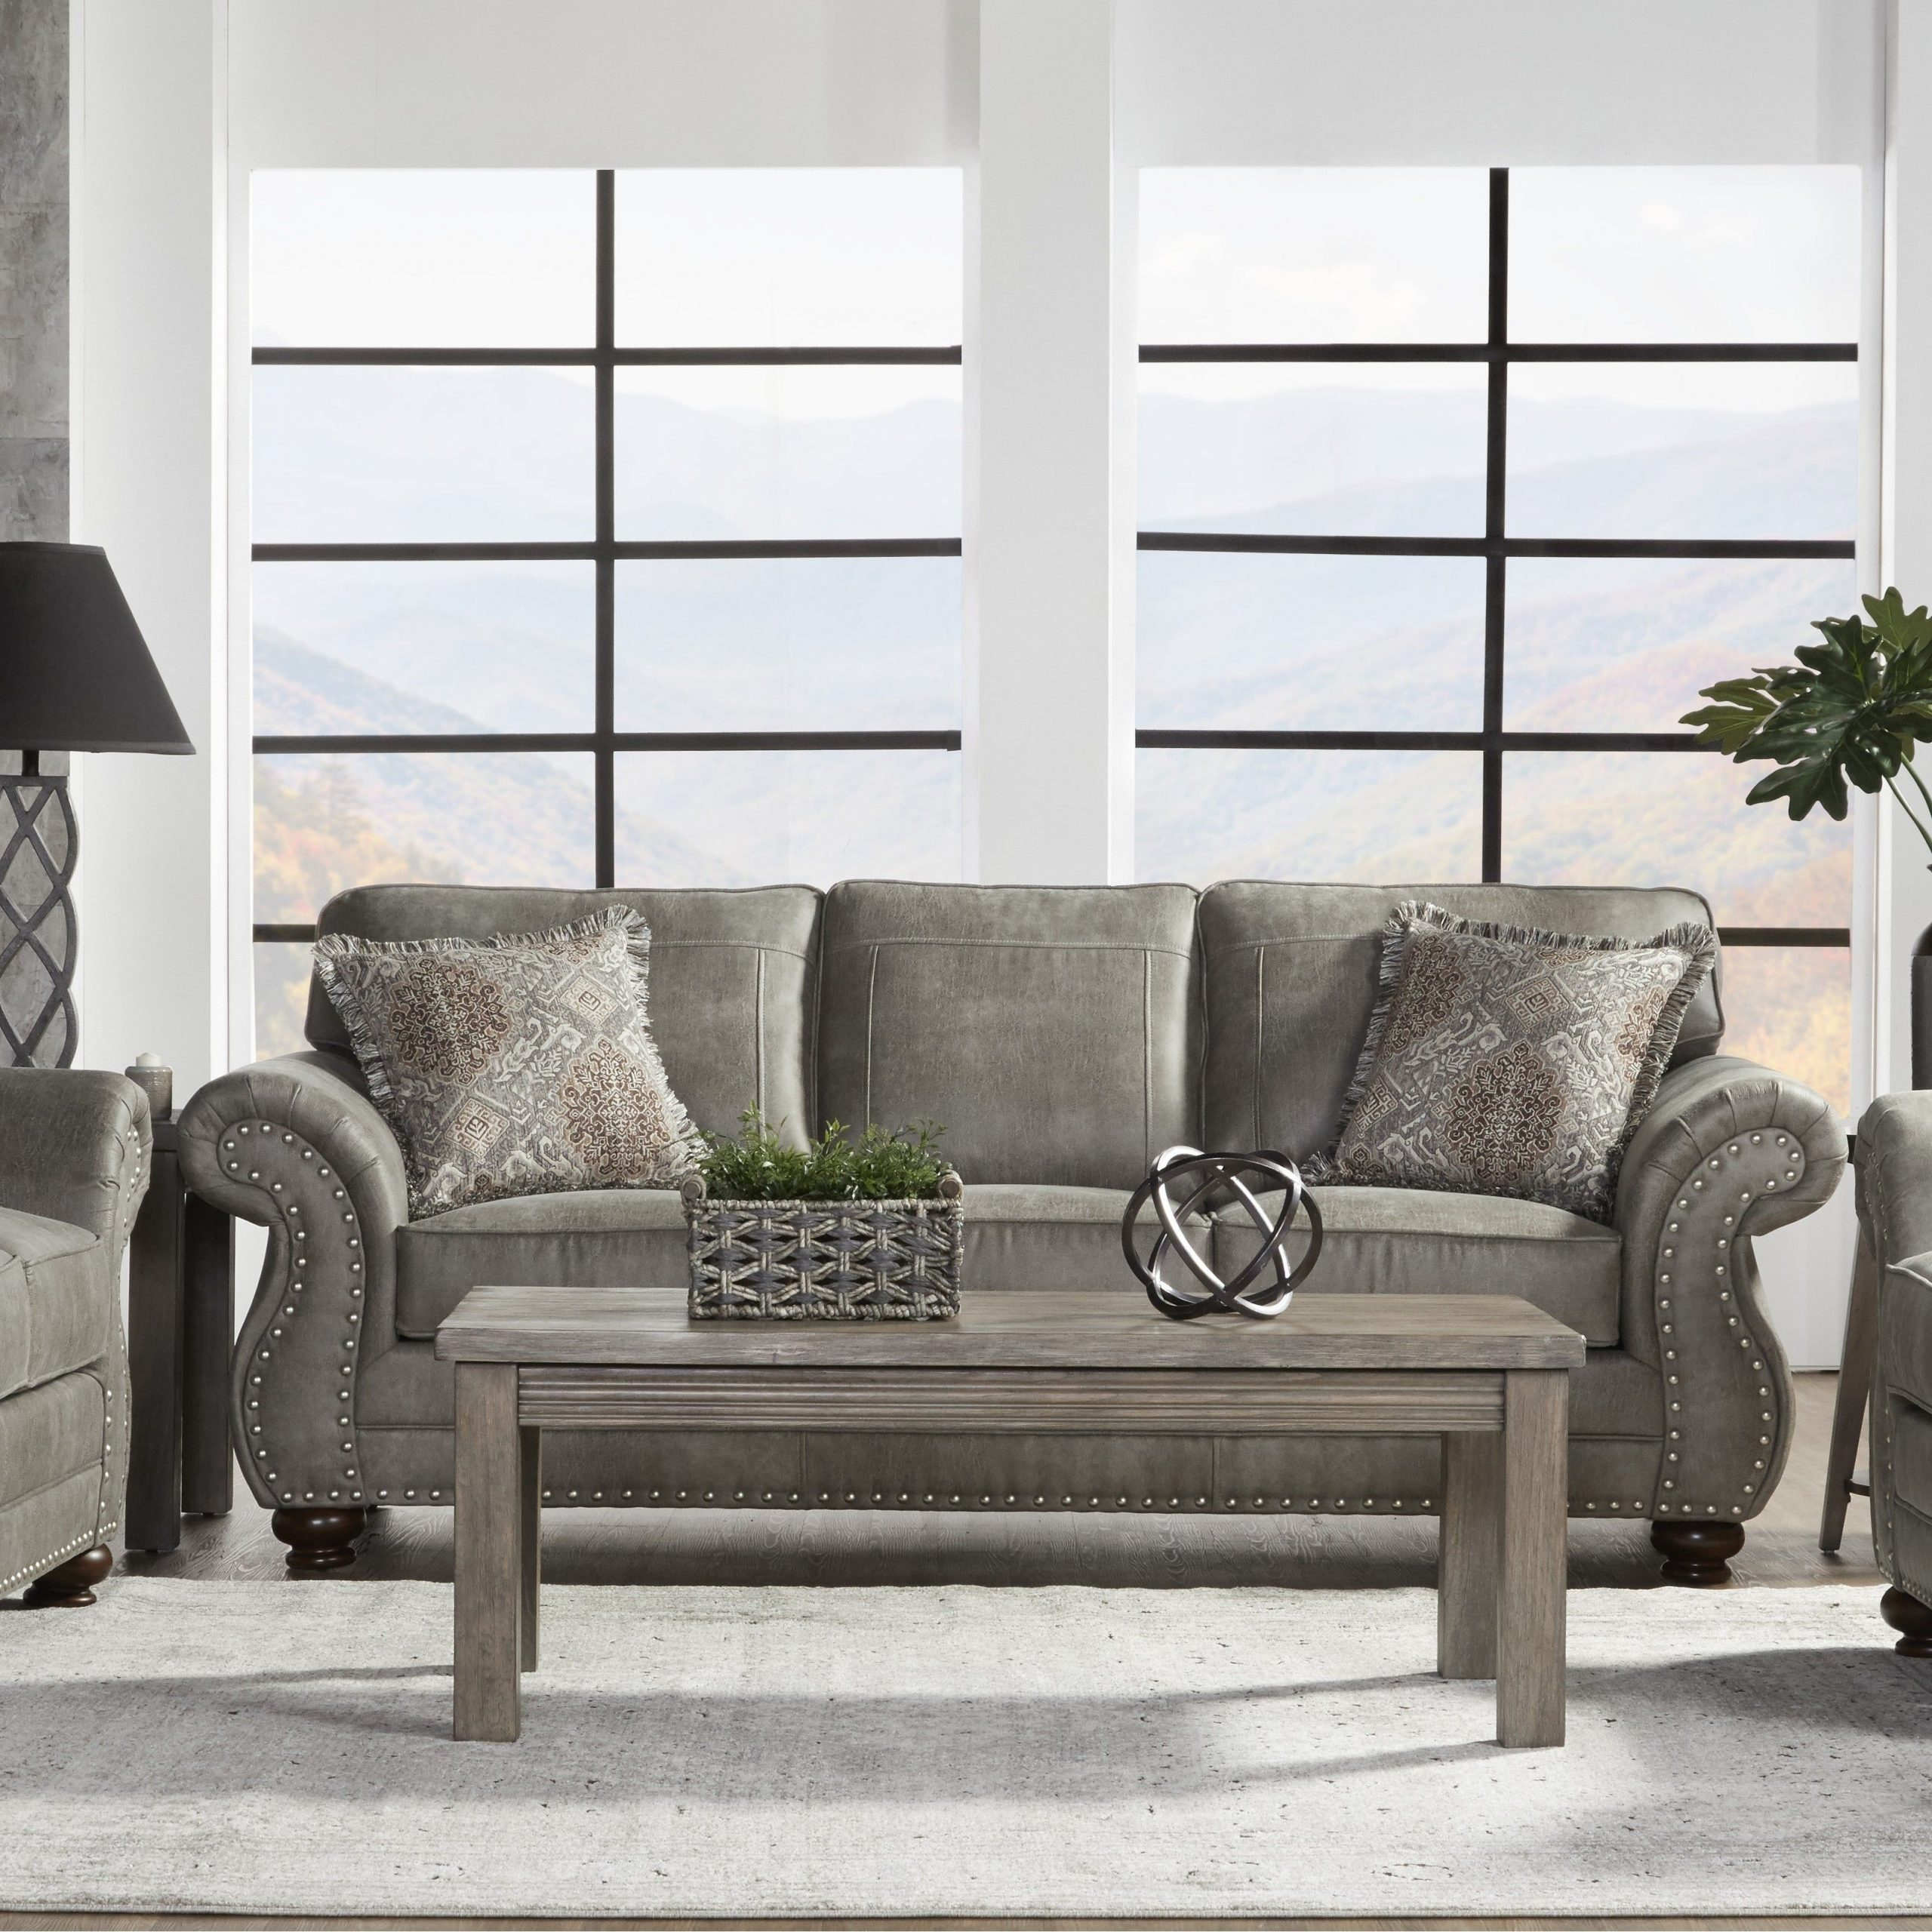 Radcliff Nailhead Trim Sectional Sofas Gray With Regard To Widely Used Leinster Faux Leather Upholstered Nailhead Sofa In Stone (View 23 of 25)